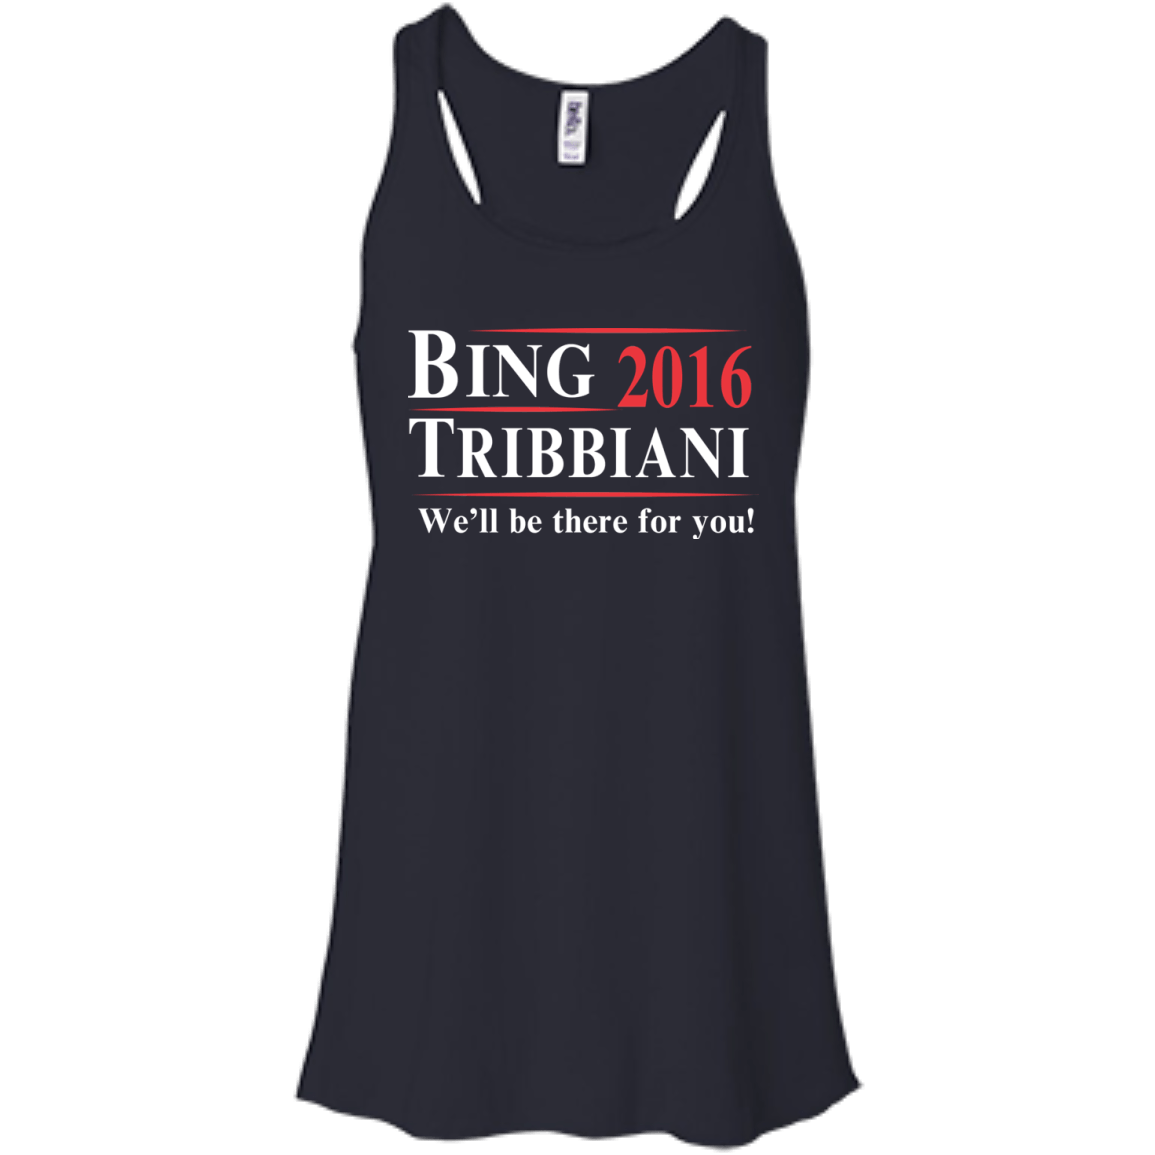 Bing Tribbiani for president 2016 t shirt & hoodies